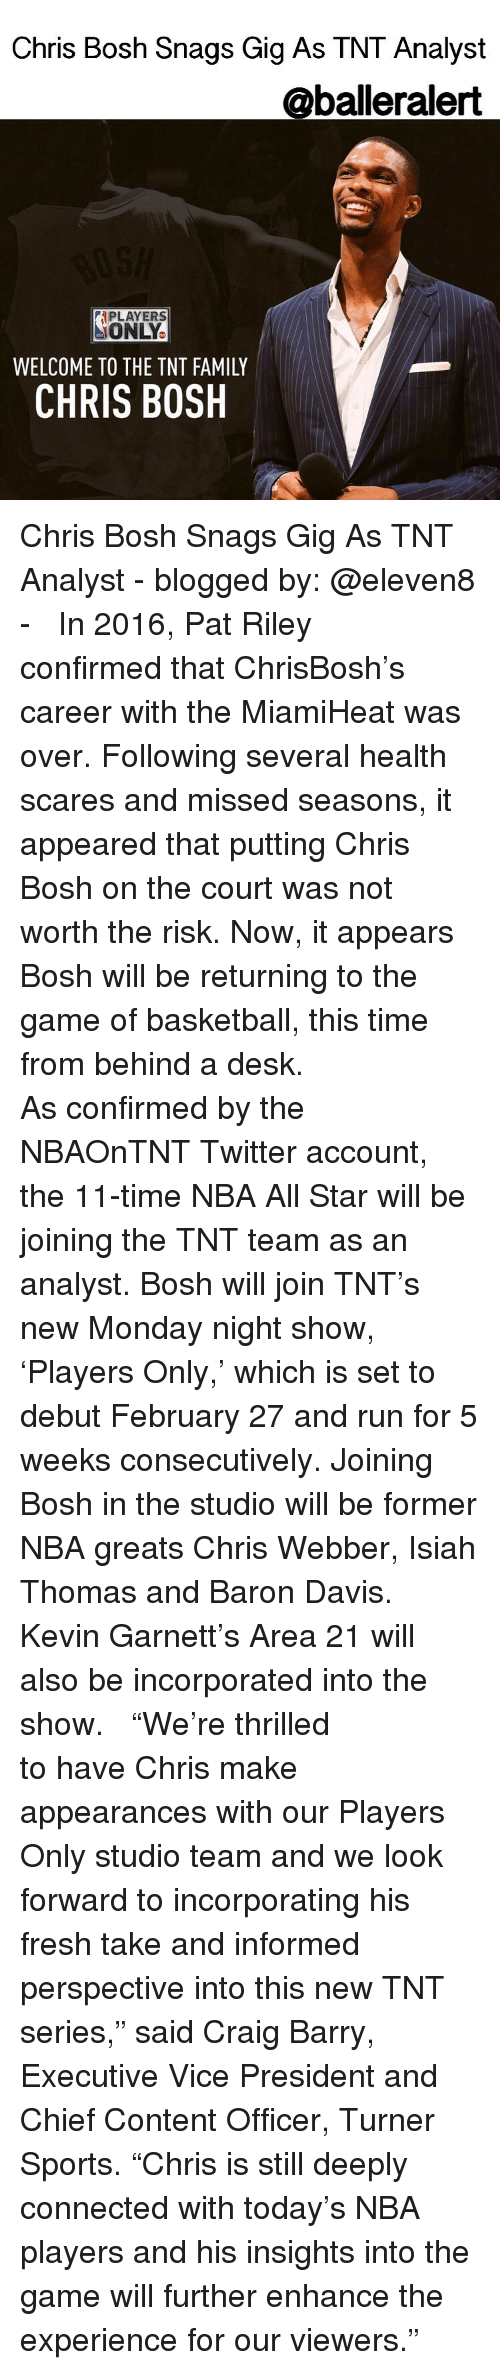 """nba all stars: Chris Bosh Snags Gig As TNT Analyst  @baller alert  APLAYERS  ONLY.  WELCOME TO THE TNT FAMILY  CHRIS BOSH Chris Bosh Snags Gig As TNT Analyst - blogged by: @eleven8 - ⠀⠀⠀⠀⠀⠀⠀⠀ ⠀⠀⠀⠀⠀⠀⠀⠀ In 2016, Pat Riley confirmed that ChrisBosh's career with the MiamiHeat was over. Following several health scares and missed seasons, it appeared that putting Chris Bosh on the court was not worth the risk. Now, it appears Bosh will be returning to the game of basketball, this time from behind a desk. ⠀⠀⠀⠀⠀⠀⠀⠀ ⠀⠀⠀⠀⠀⠀⠀⠀ As confirmed by the NBAOnTNT Twitter account, the 11-time NBA All Star will be joining the TNT team as an analyst. Bosh will join TNT's new Monday night show, 'Players Only,' which is set to debut February 27 and run for 5 weeks consecutively. Joining Bosh in the studio will be former NBA greats Chris Webber, Isiah Thomas and Baron Davis. Kevin Garnett's Area 21 will also be incorporated into the show. ⠀⠀⠀⠀⠀⠀⠀⠀ ⠀⠀⠀⠀⠀⠀⠀⠀ """"We're thrilled to have Chris make appearances with our Players Only studio team and we look forward to incorporating his fresh take and informed perspective into this new TNT series,"""" said Craig Barry, Executive Vice President and Chief Content Officer, Turner Sports. """"Chris is still deeply connected with today's NBA players and his insights into the game will further enhance the experience for our viewers."""""""